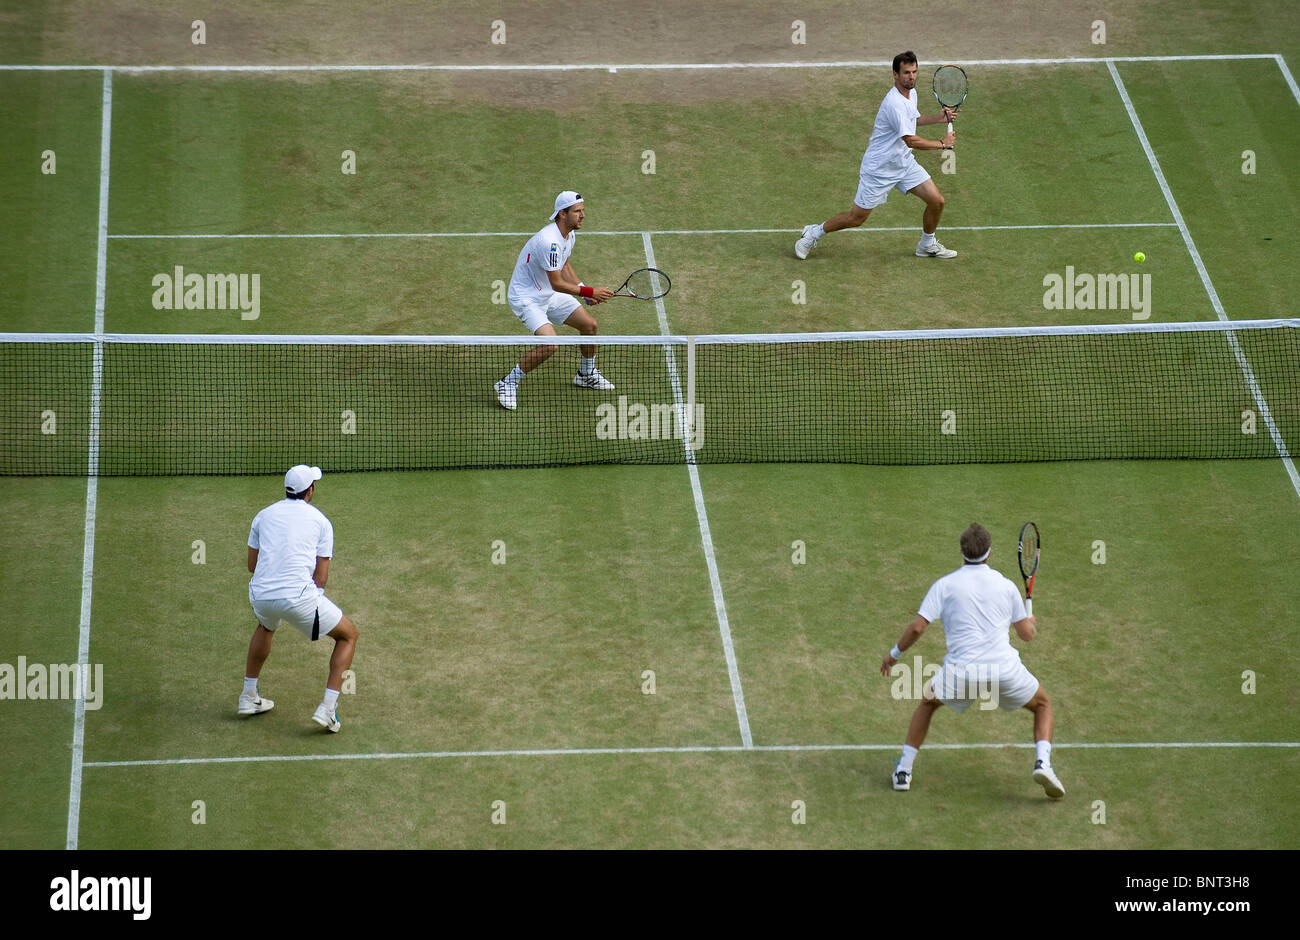 Action from the Men's Doubles Final during the Wimbledon Tennis Championships 2010 - Stock Image